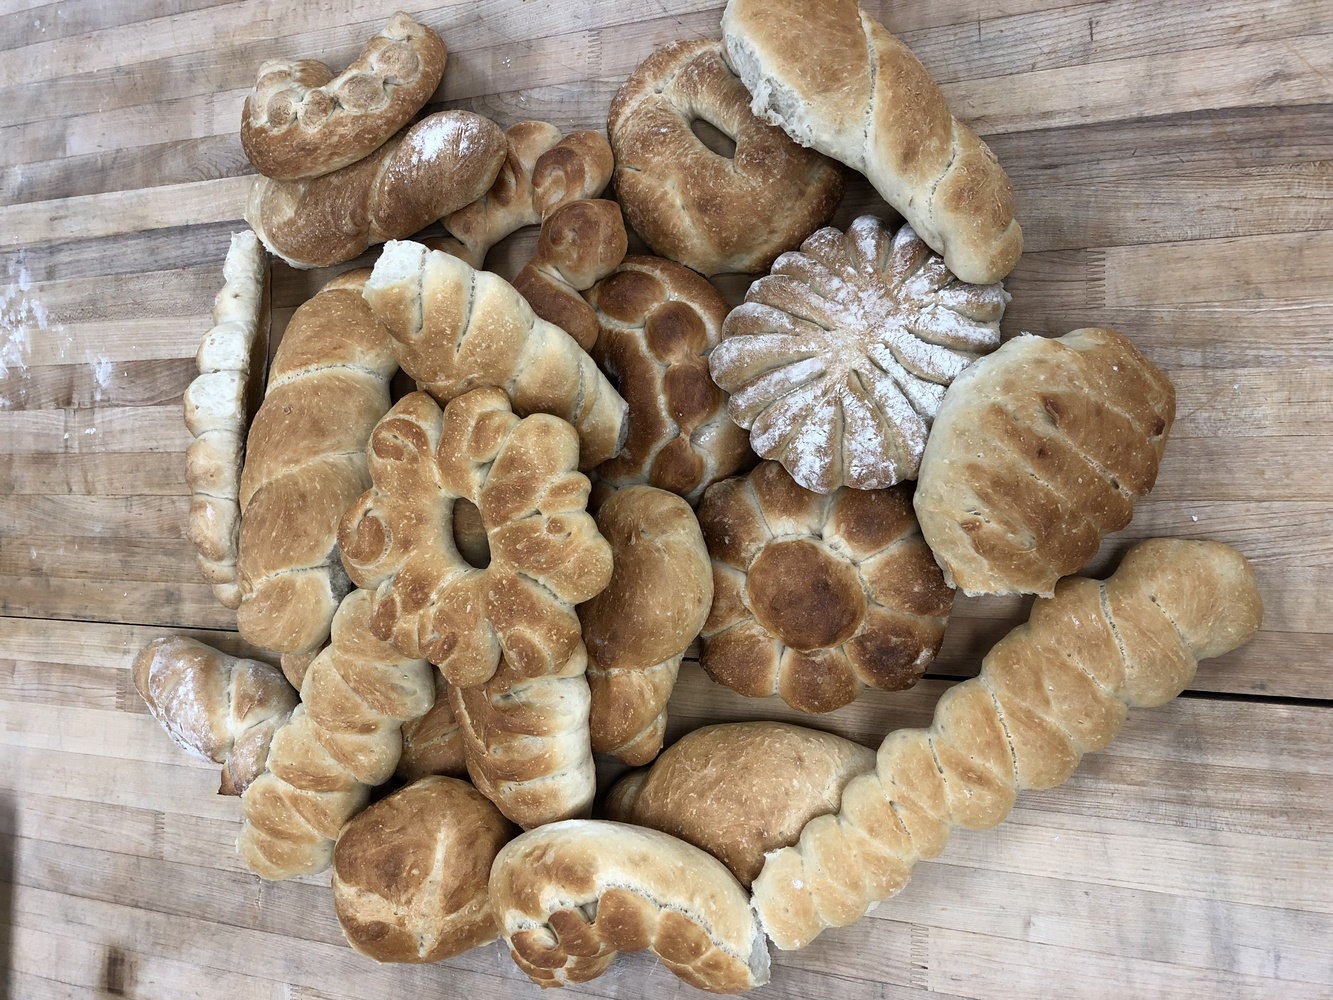 French country breads by Loughton Smith